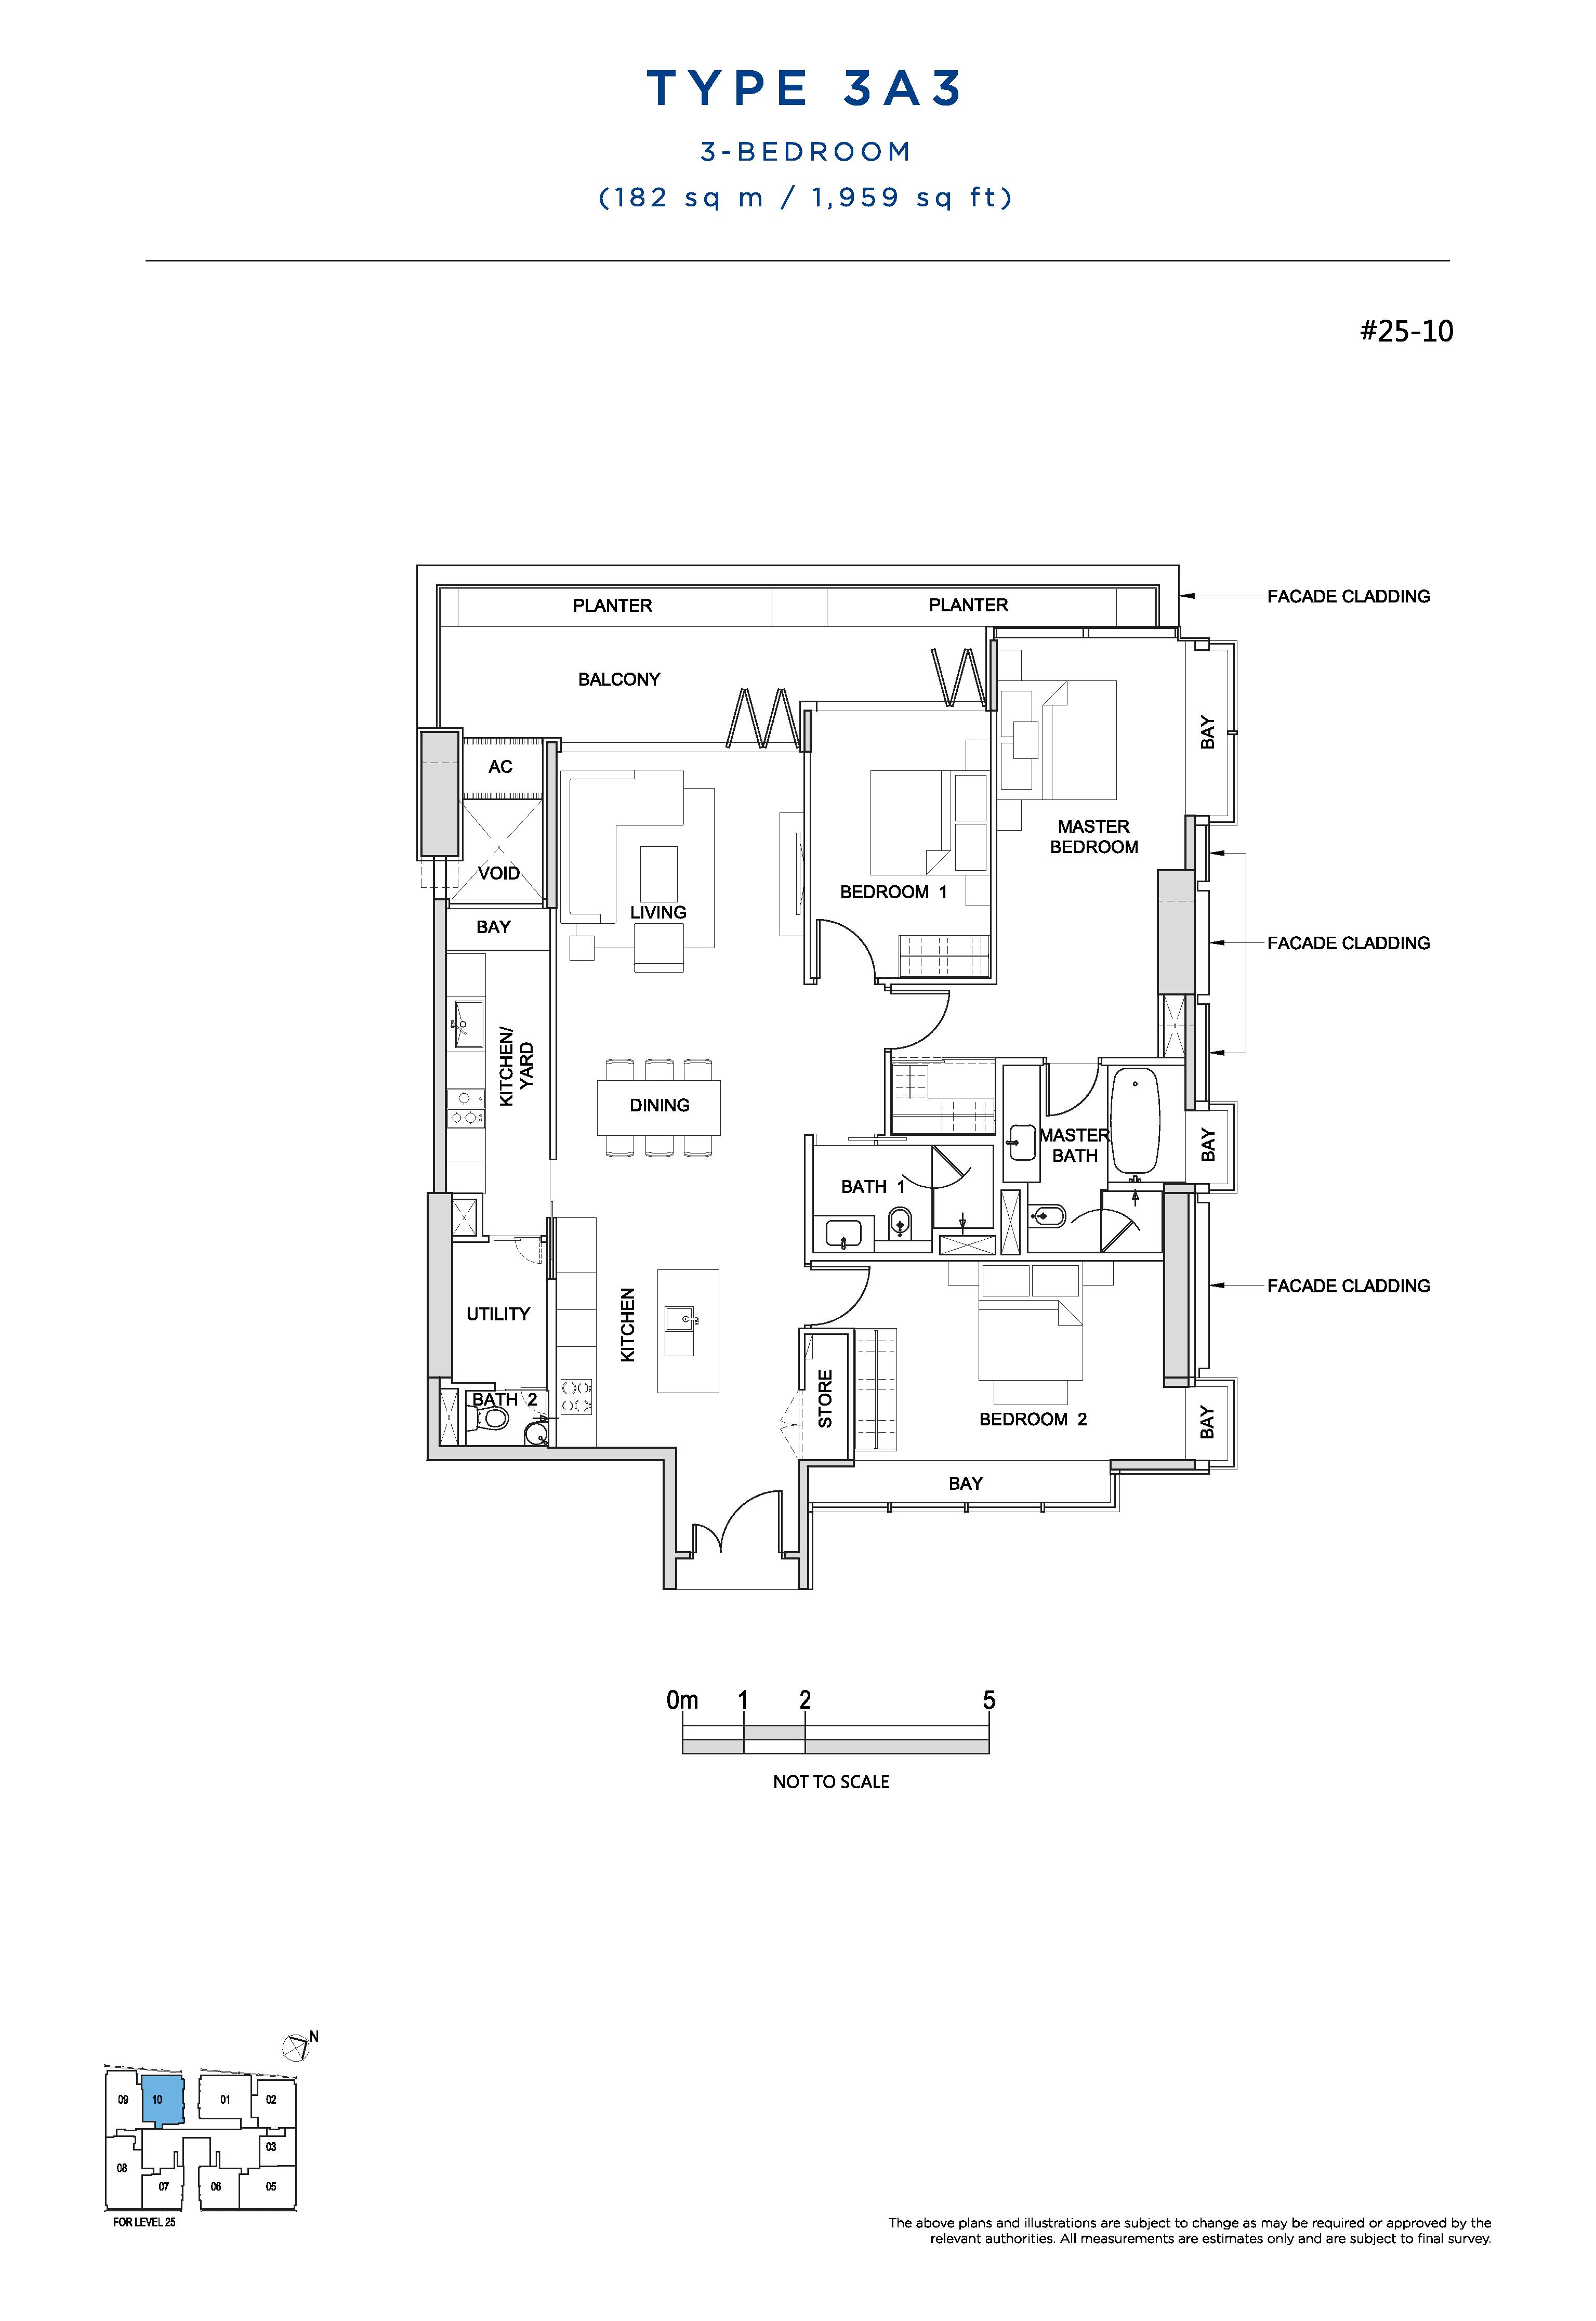 South Beach Residences 3 Bedroom Floor Plans Type 3A3